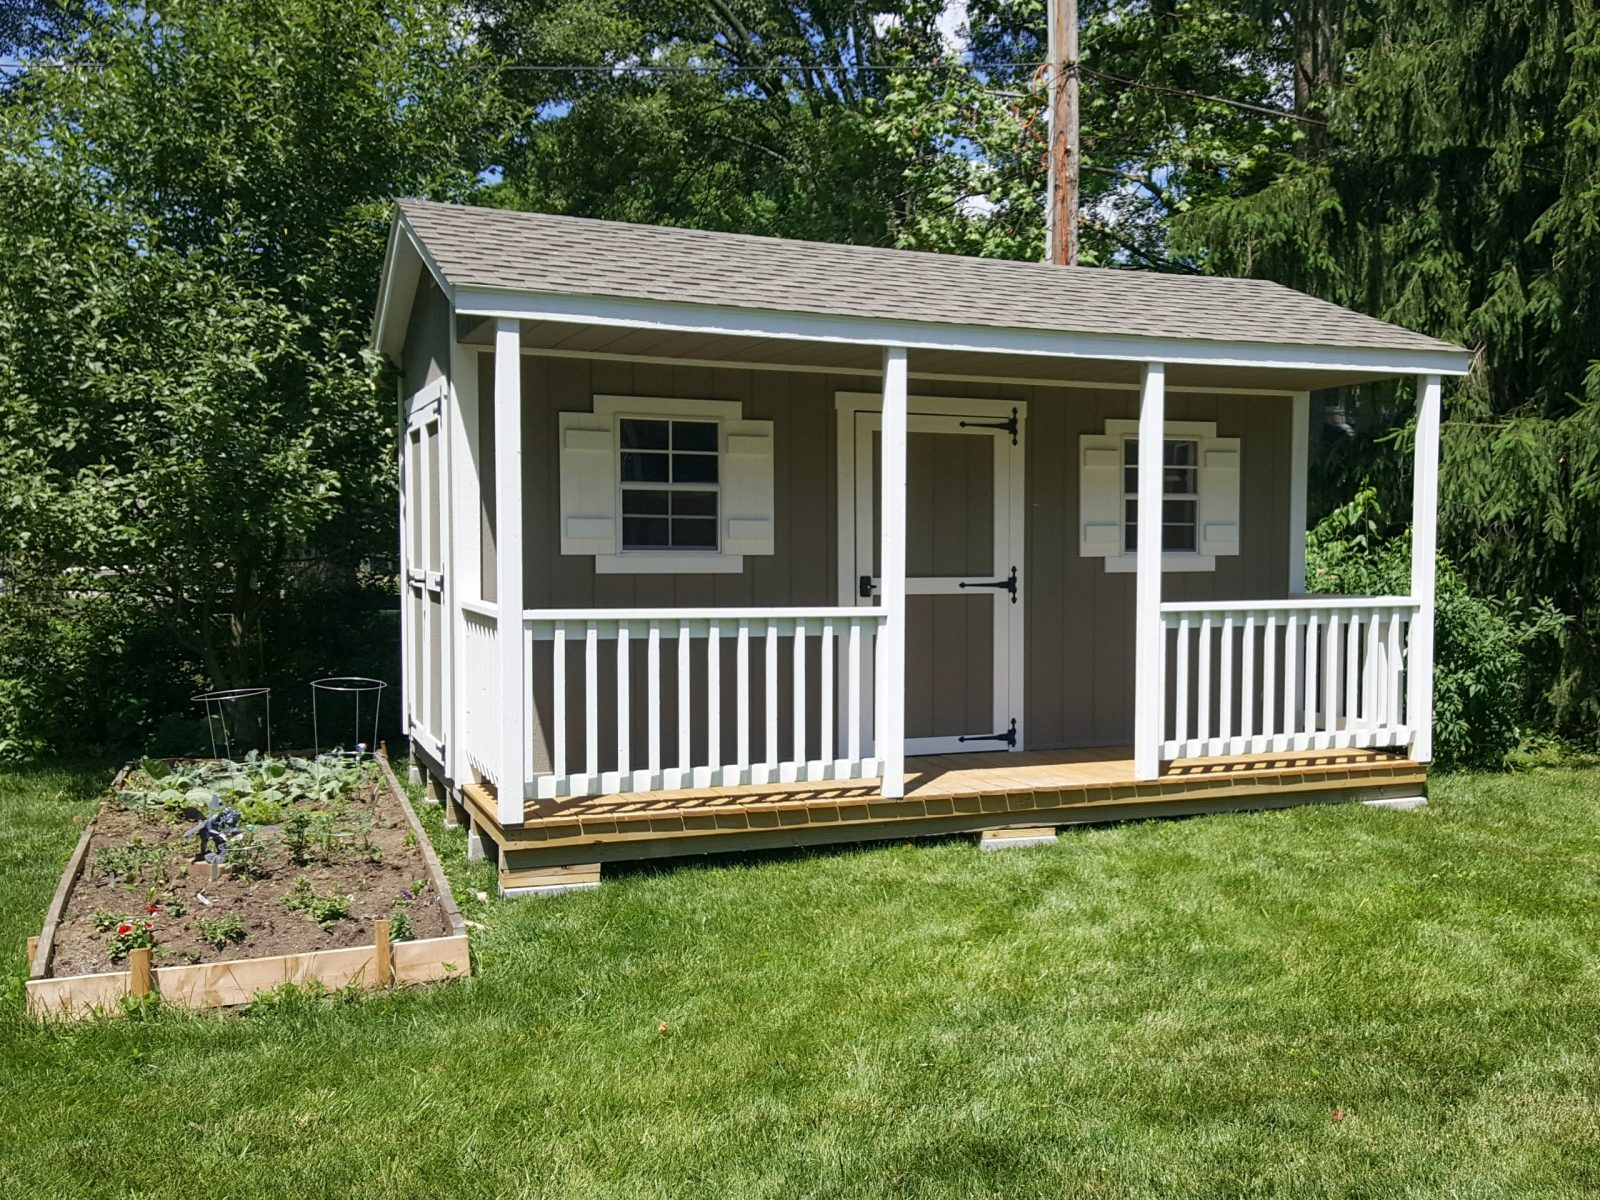 cabin shed with porch used as garden shed in central ohio